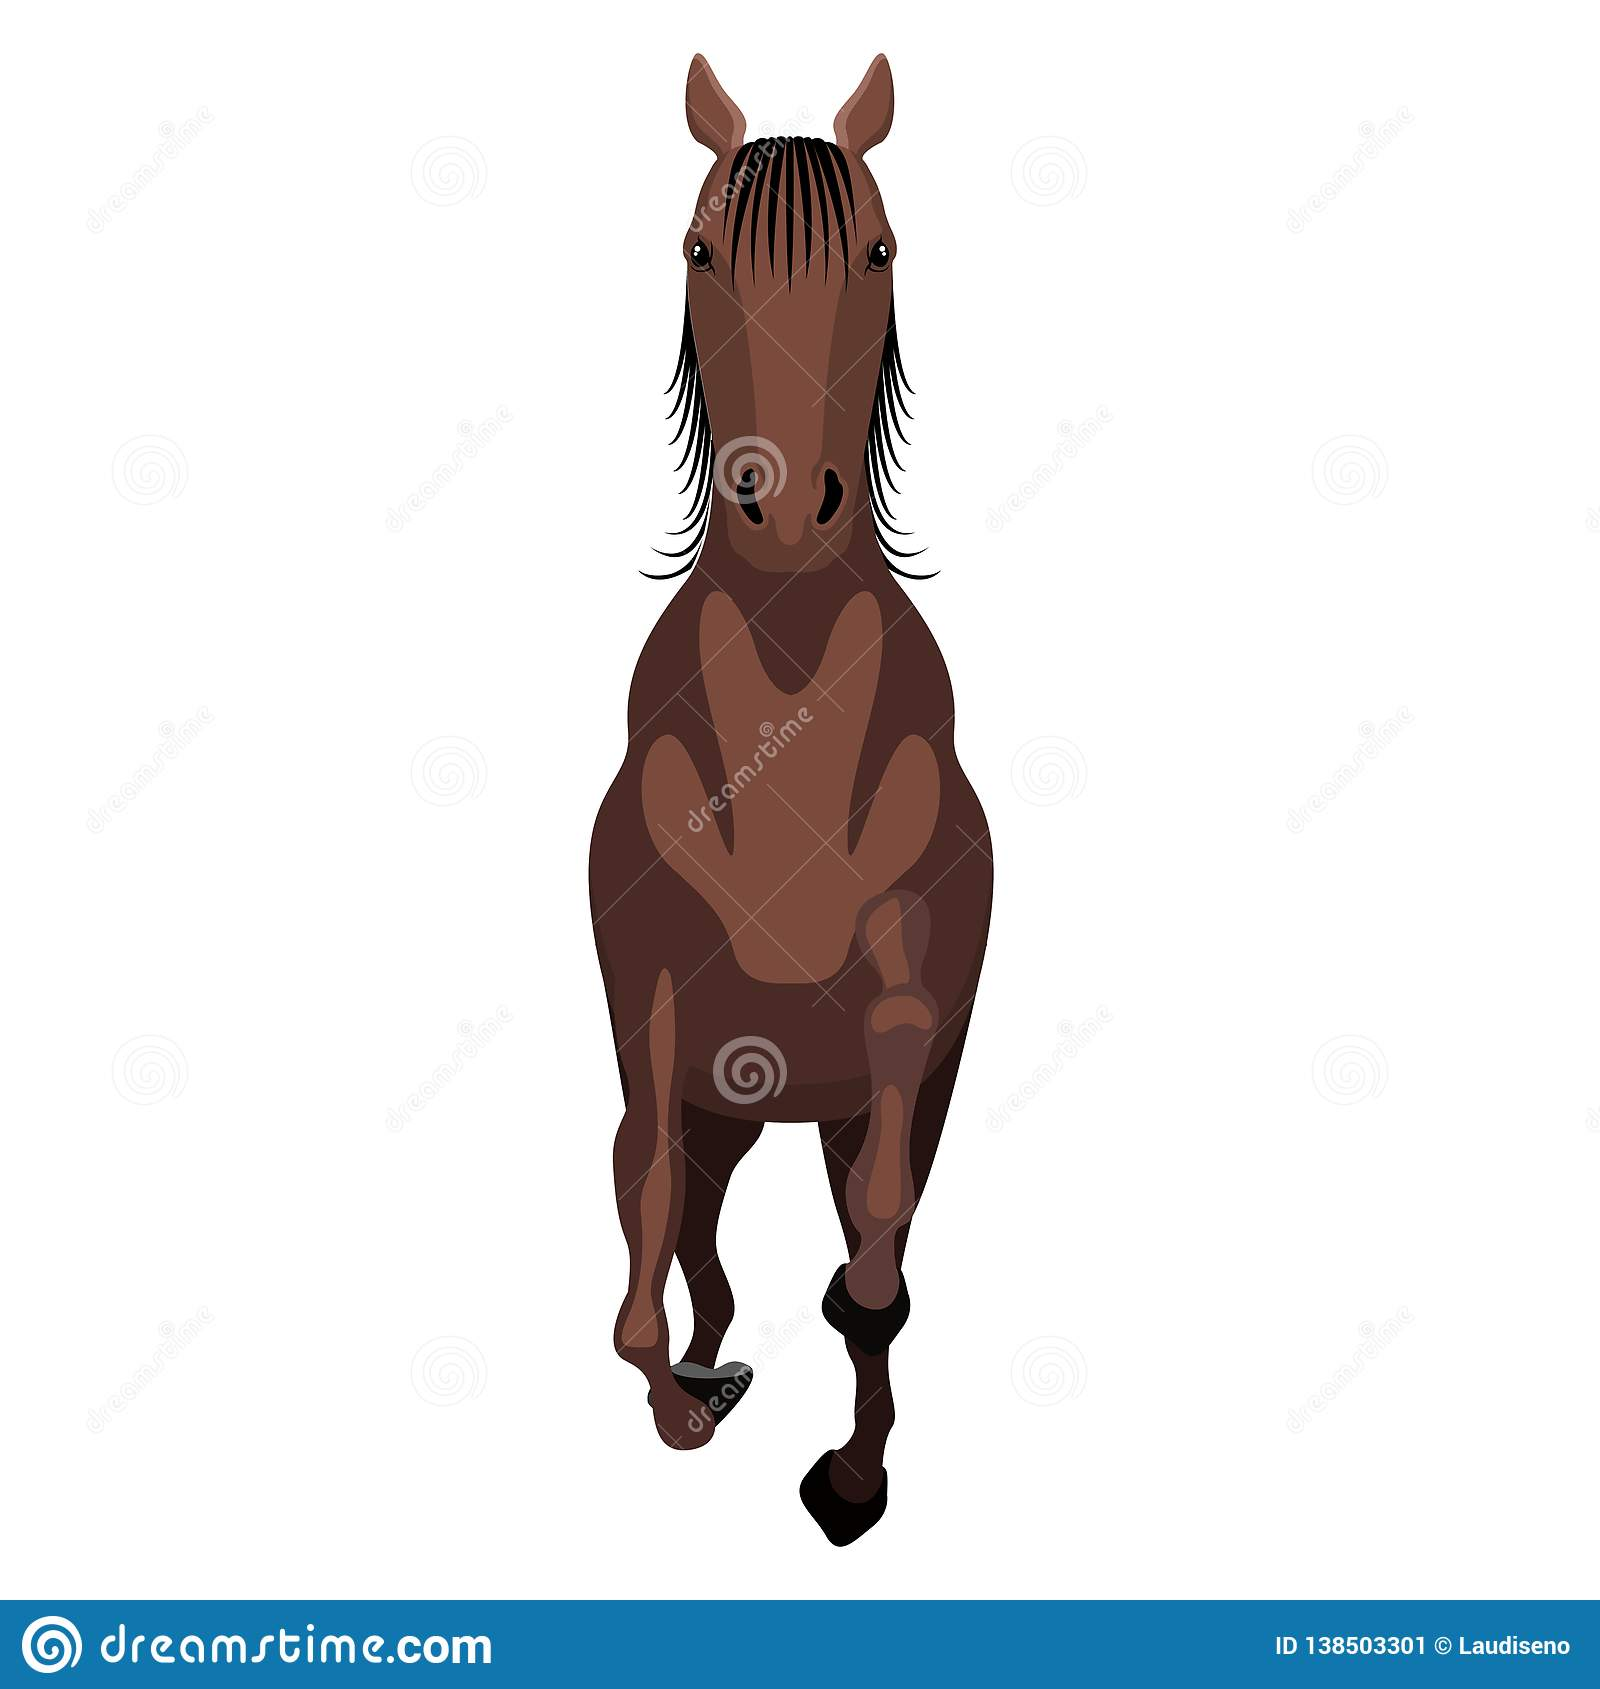 Front View Horse Stock Illustrations 415 Front View Horse Stock Illustrations Vectors Clipart Dreamstime